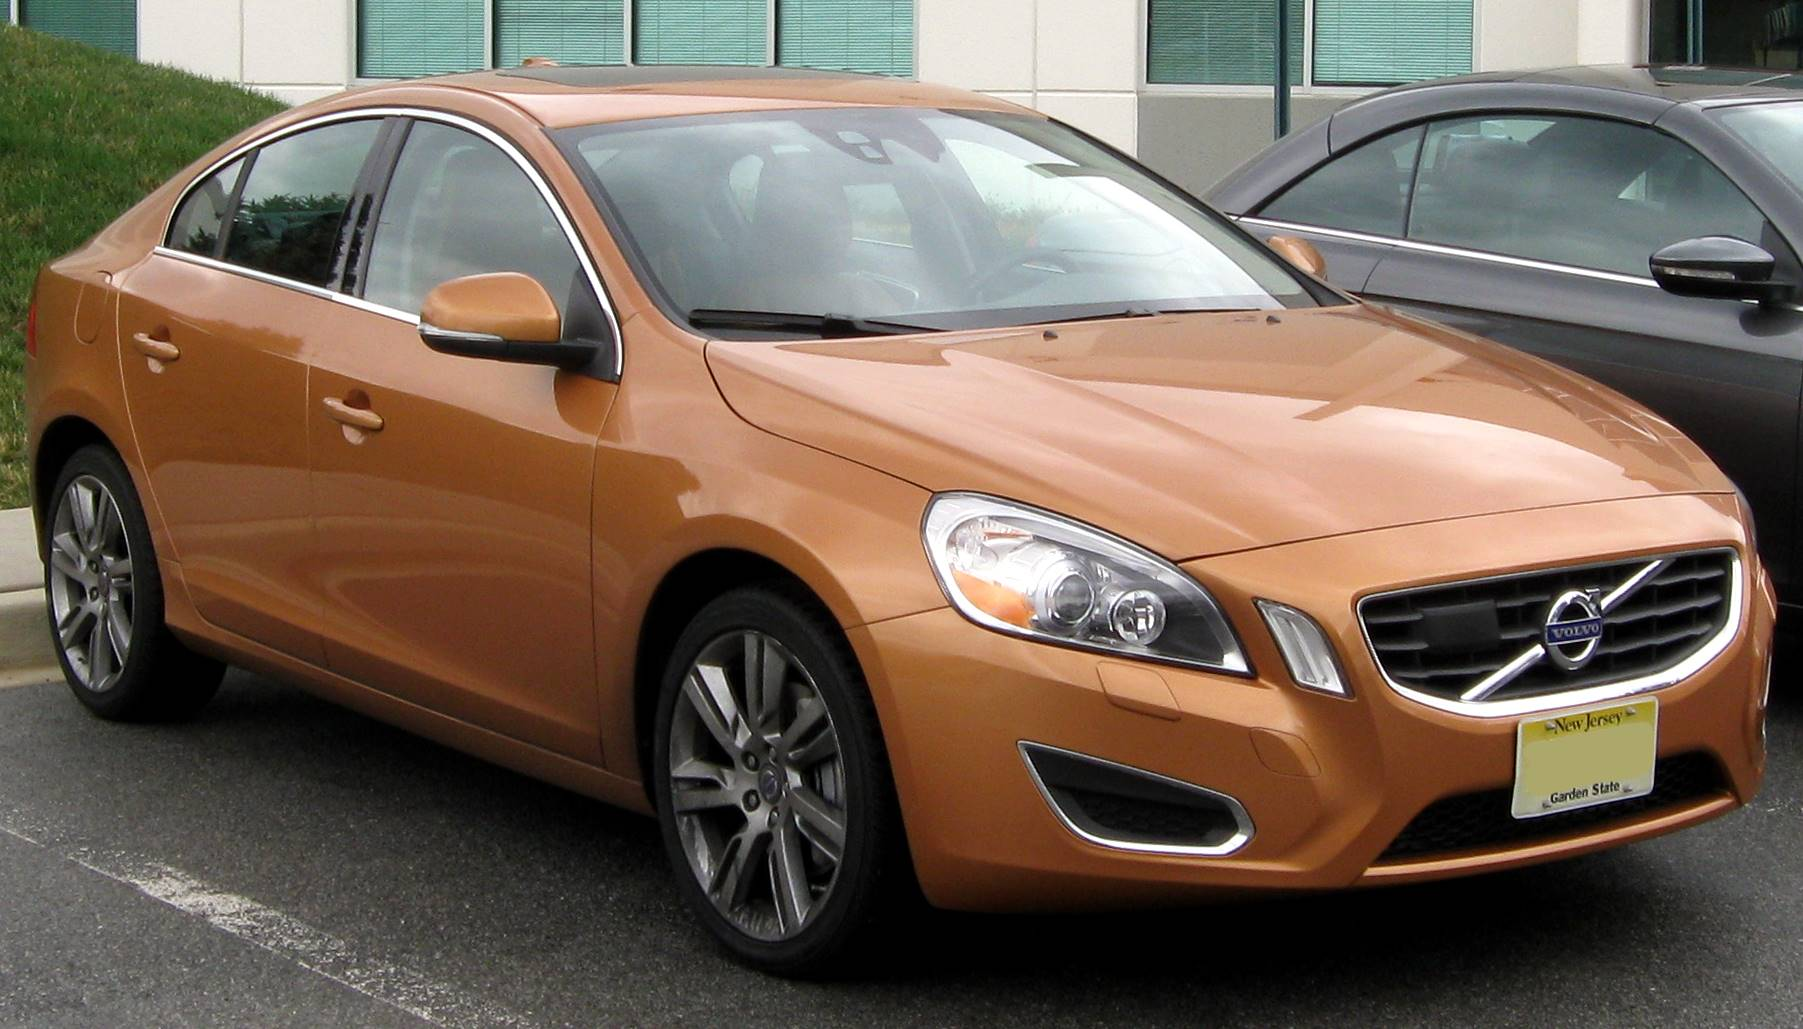 2012 volvo s60 t5 sedan 2 5l turbo auto. Black Bedroom Furniture Sets. Home Design Ideas